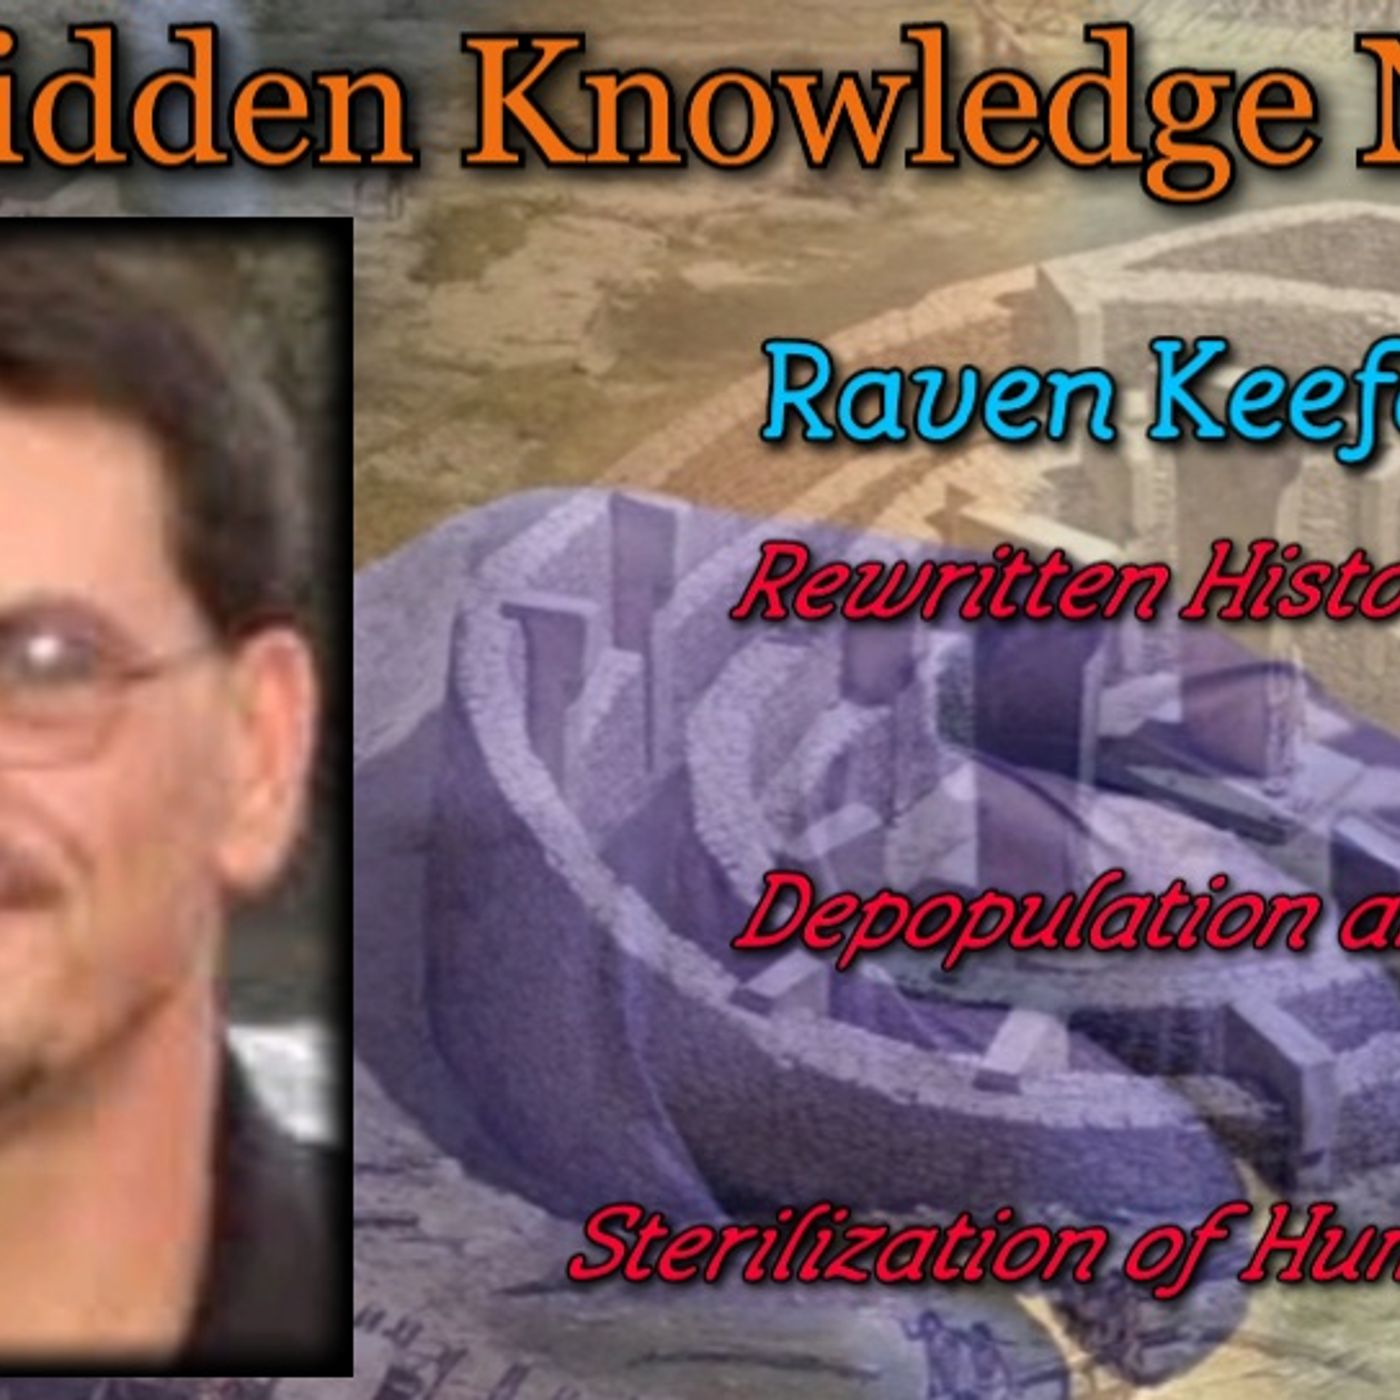 Rewritten History - Depopulation and Sterilization of Humanity with Raven Keefer